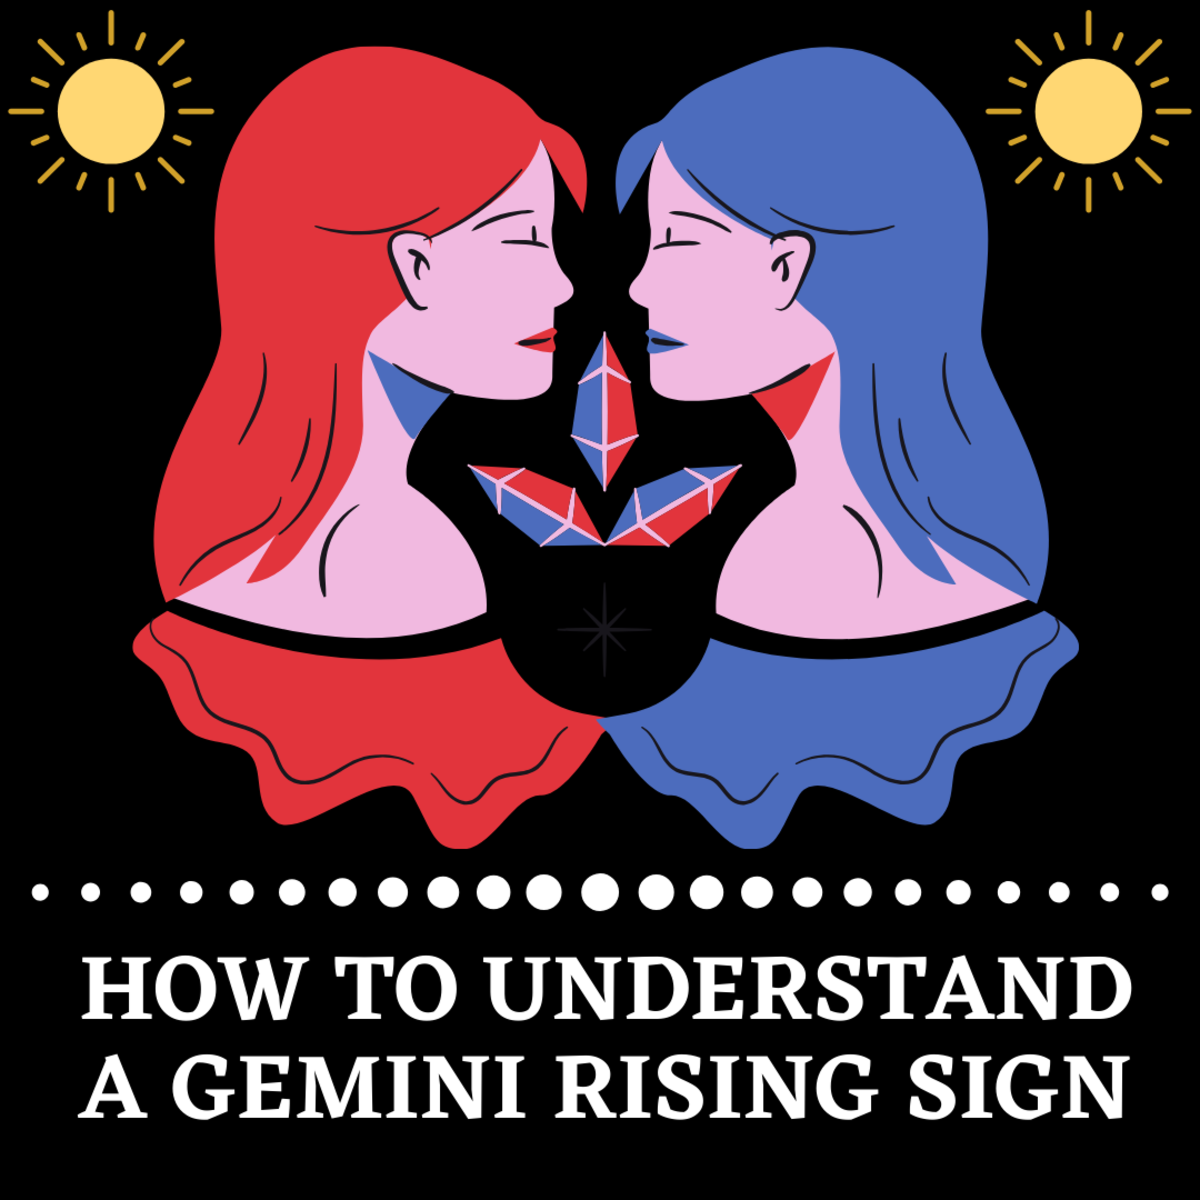 Read on to find out why Geminis are so interesting.